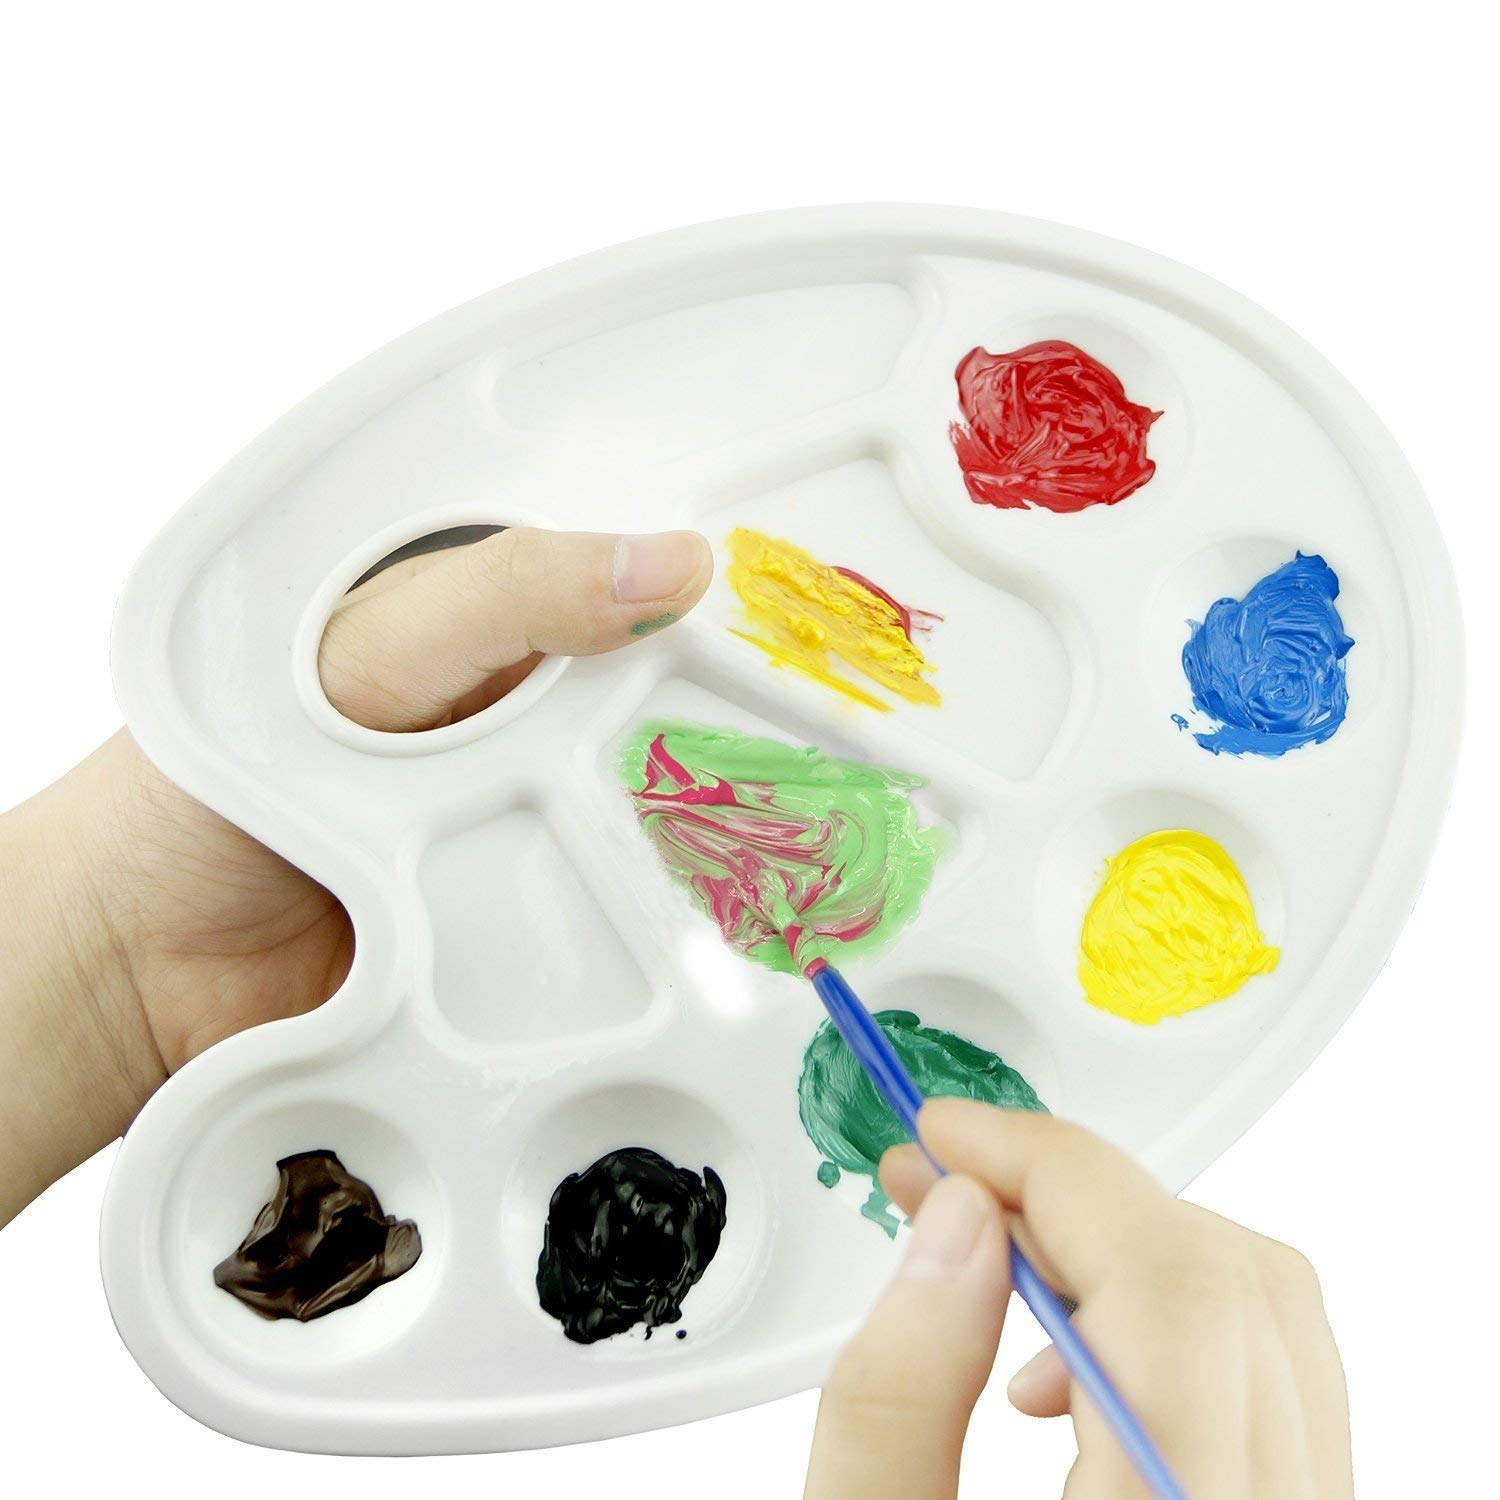 Yevison Paint Tray, 10 Wells, 1 Hole Palette Premium Quality by Yevison